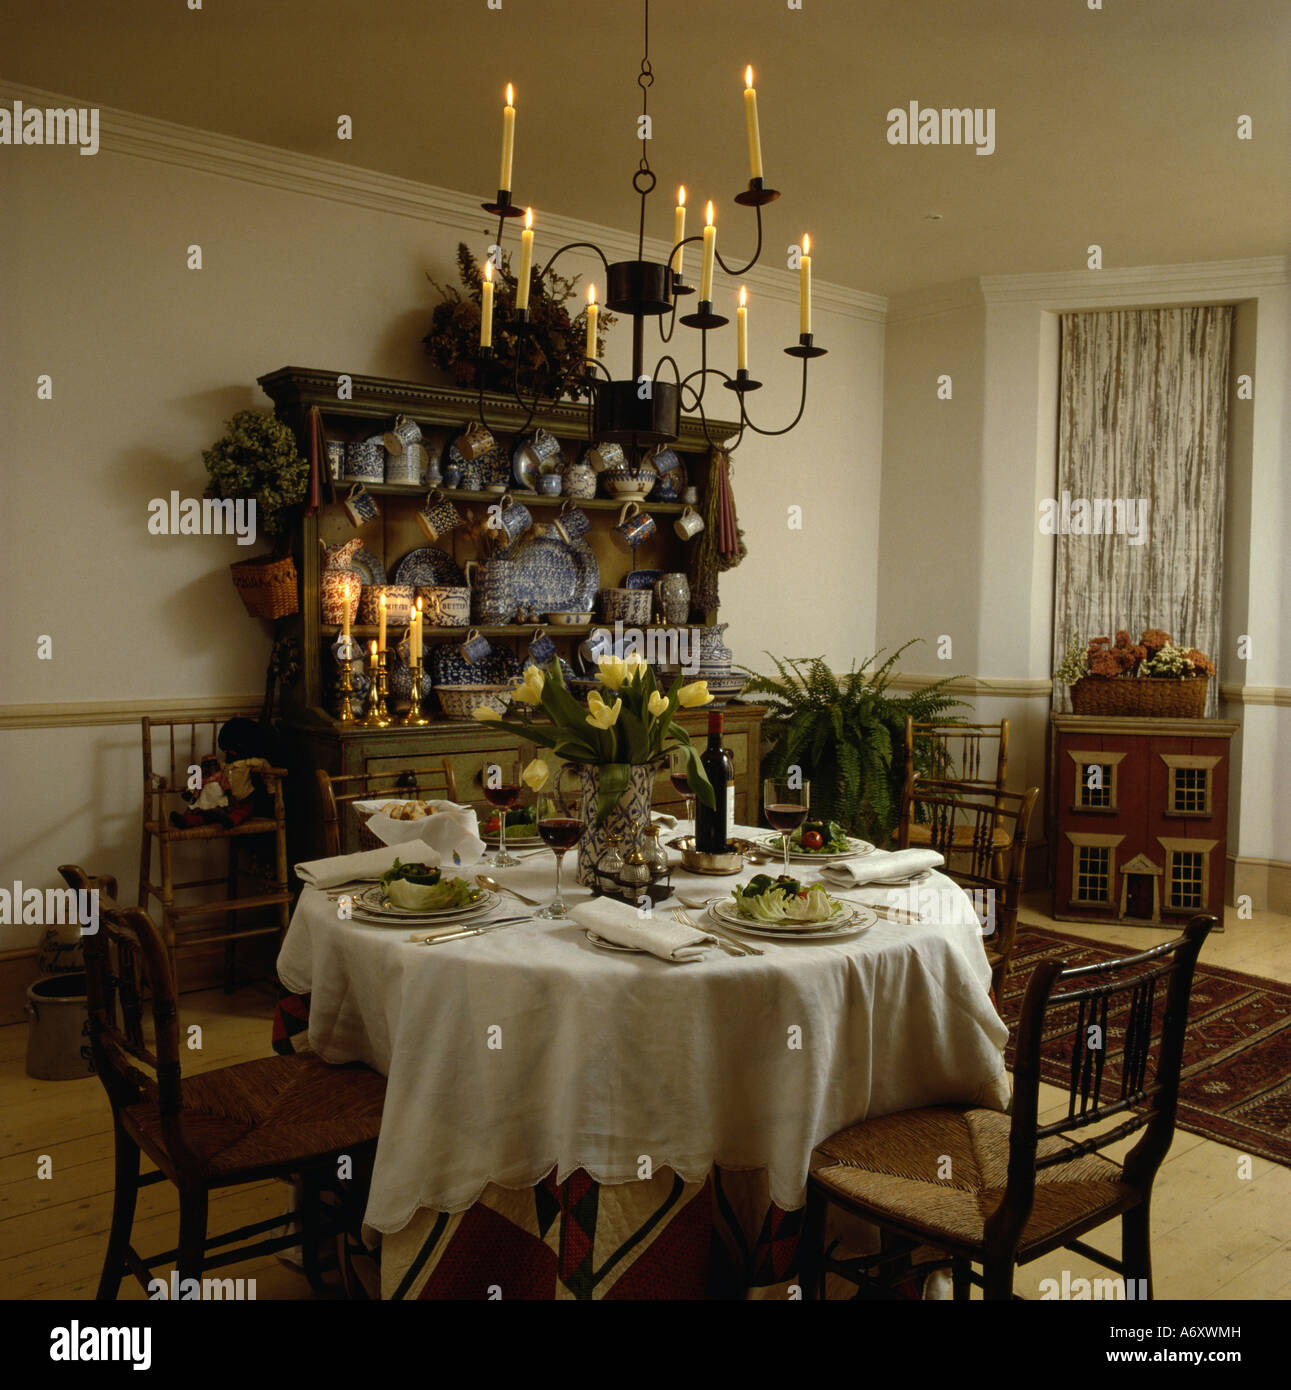 Pleasant Candle Chandelier Above Table Set For Lunch With White Cloth Beutiful Home Inspiration Xortanetmahrainfo